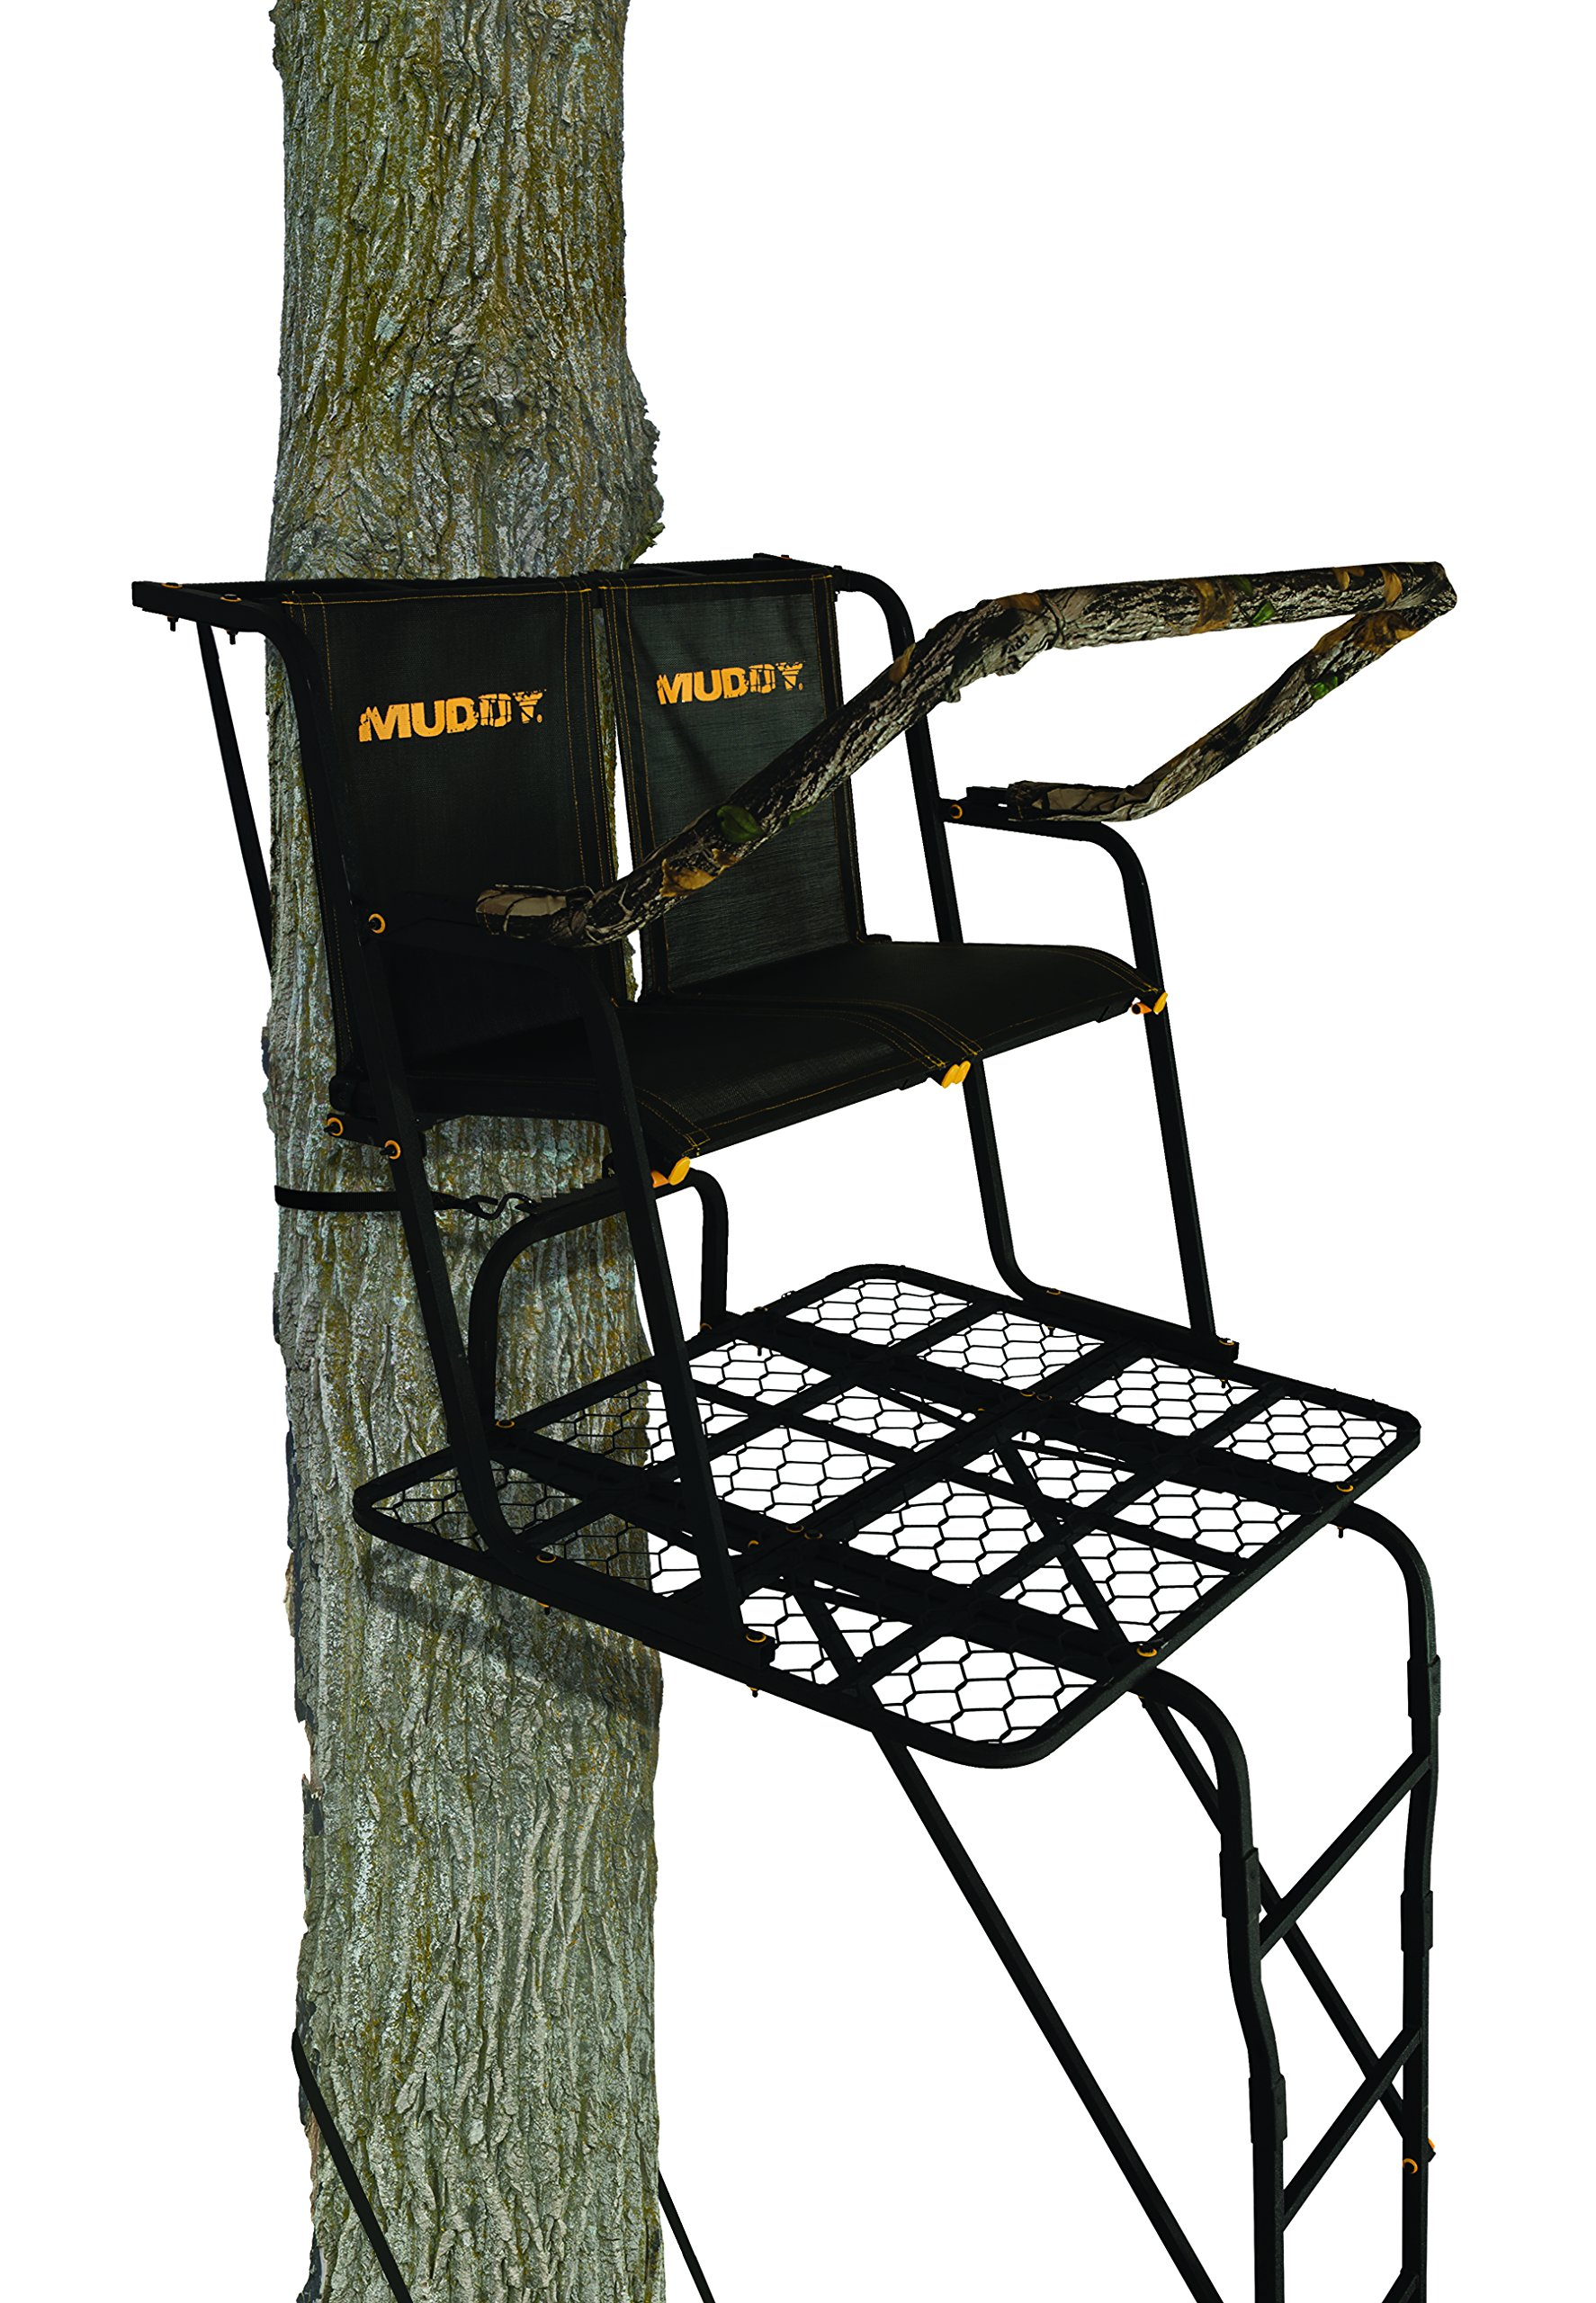 Muddy Partner 2 Man Ladderstand Black